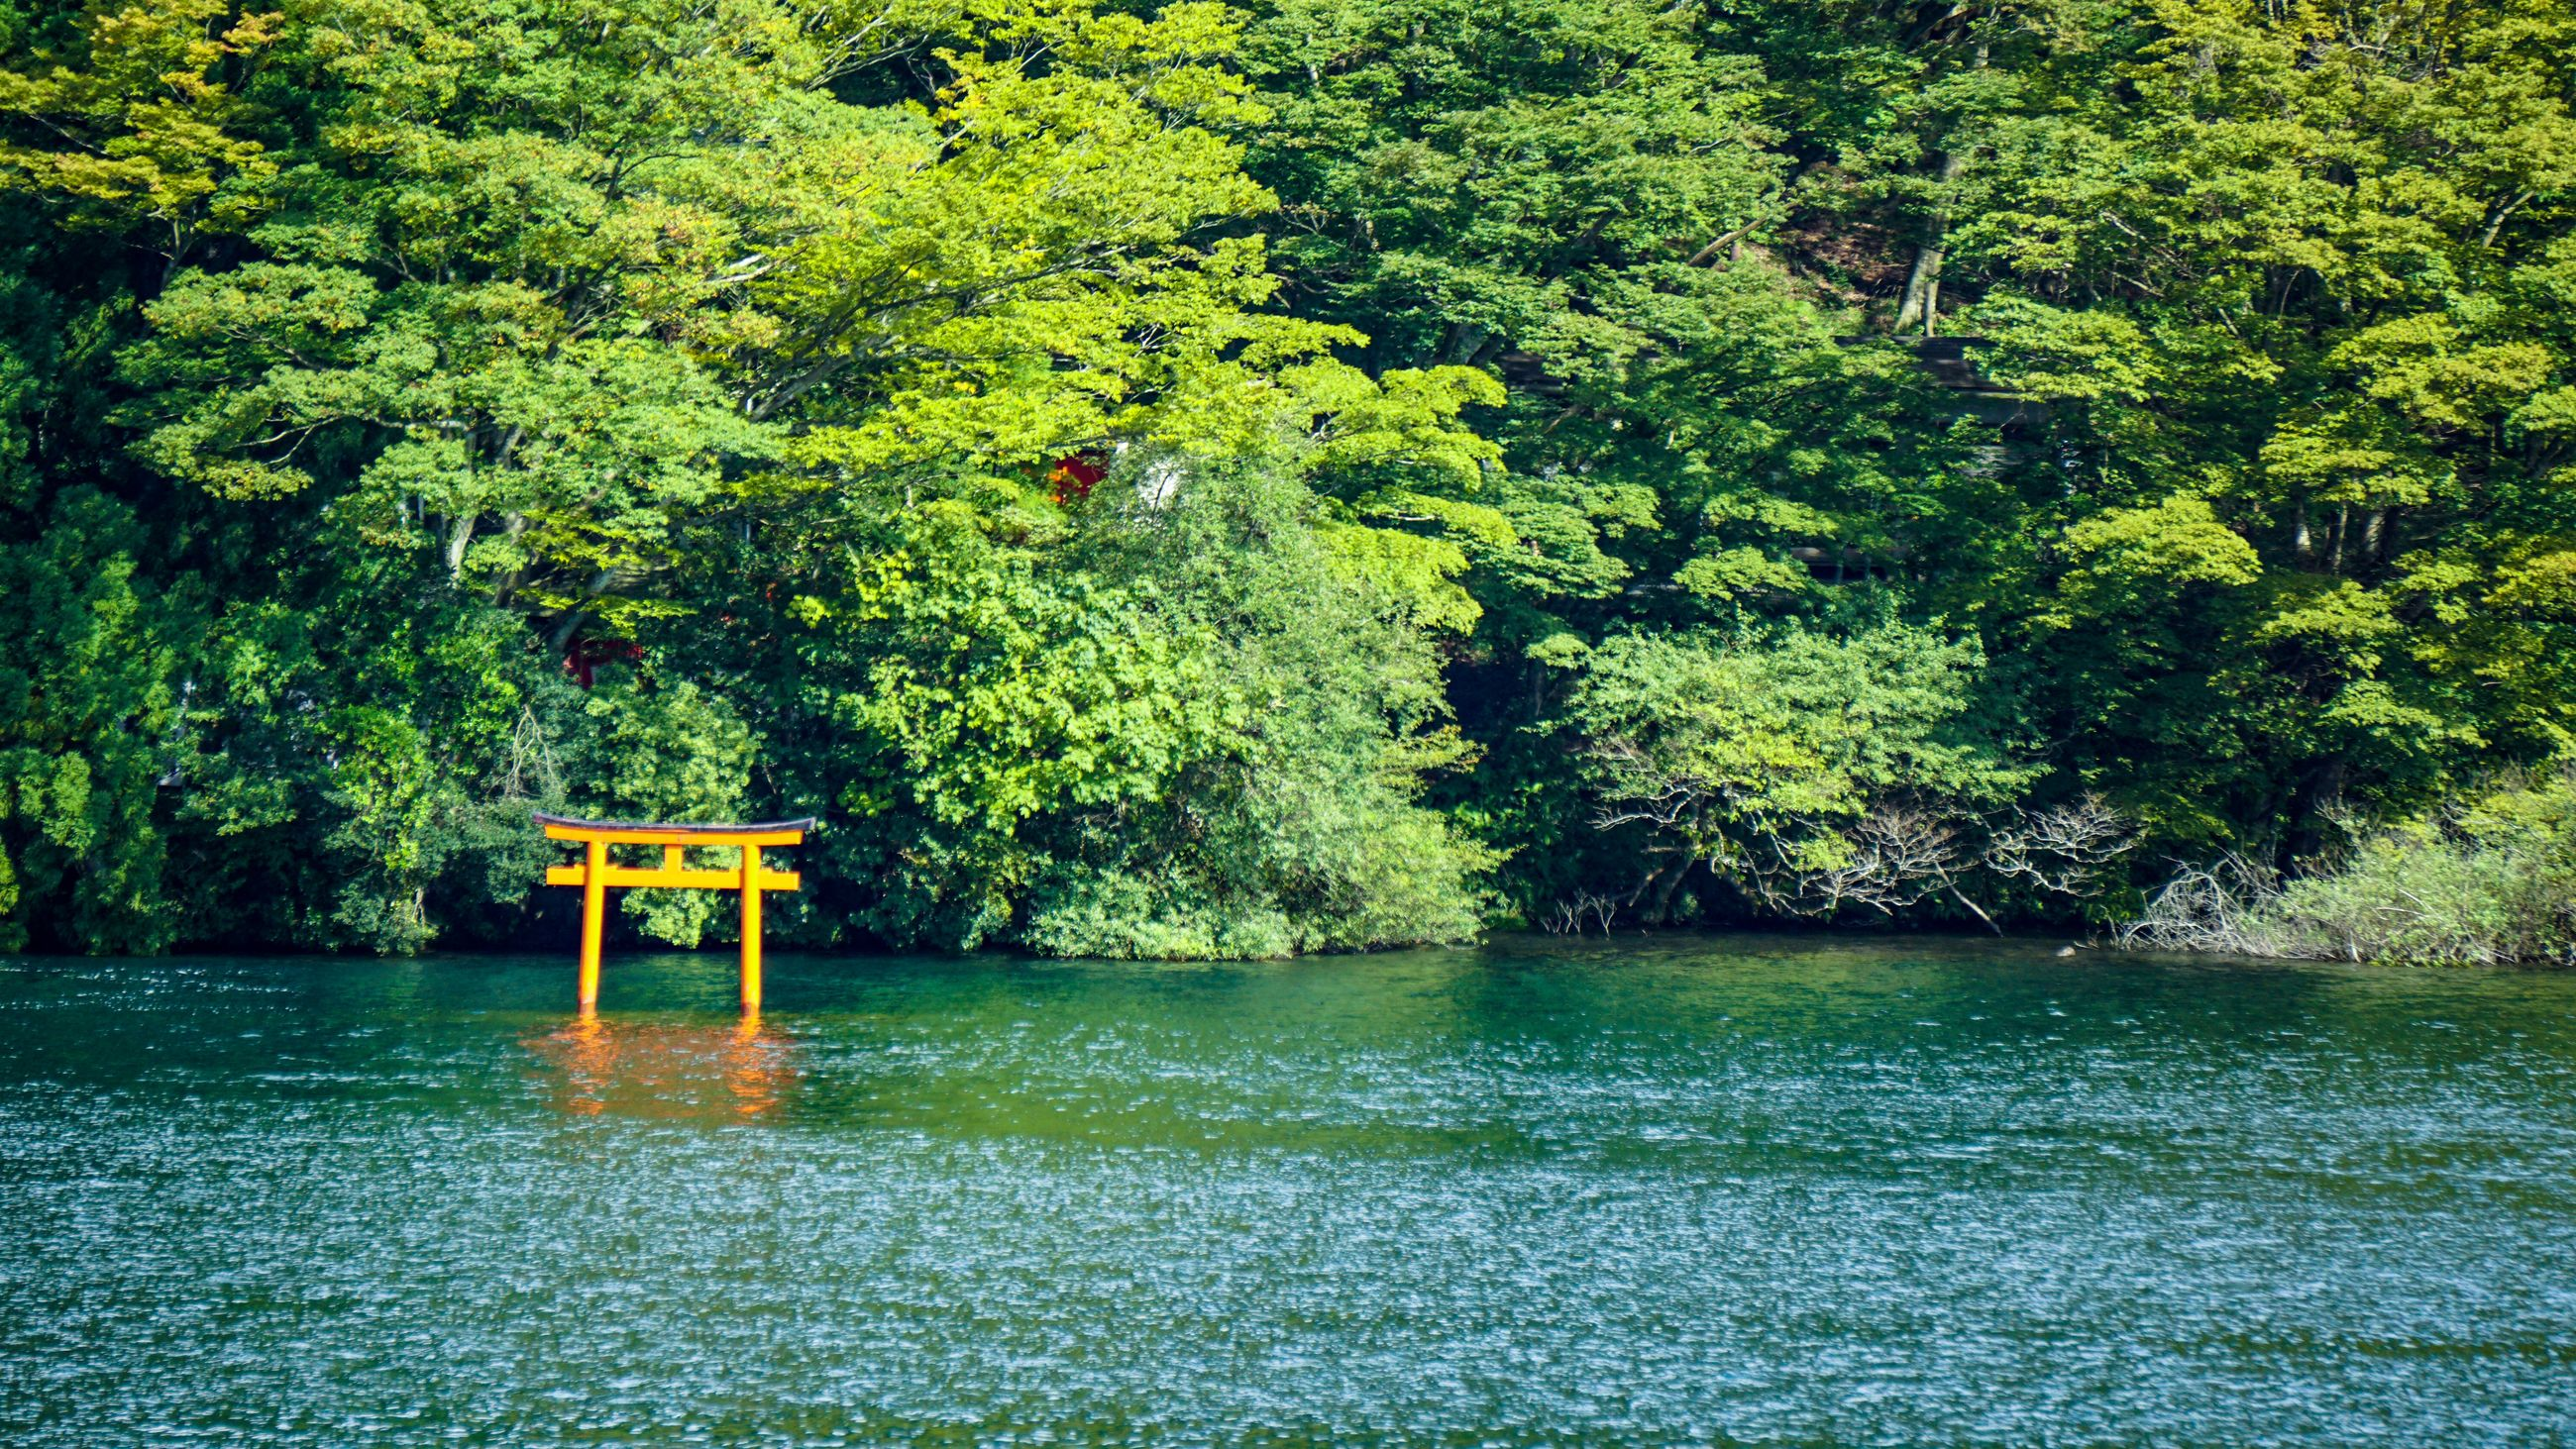 tree, plant, water, nature, lake, green color, beauty in nature, no people, forest, day, tranquility, tranquil scene, growth, scenics - nature, outdoors, yellow, idyllic, waterfront